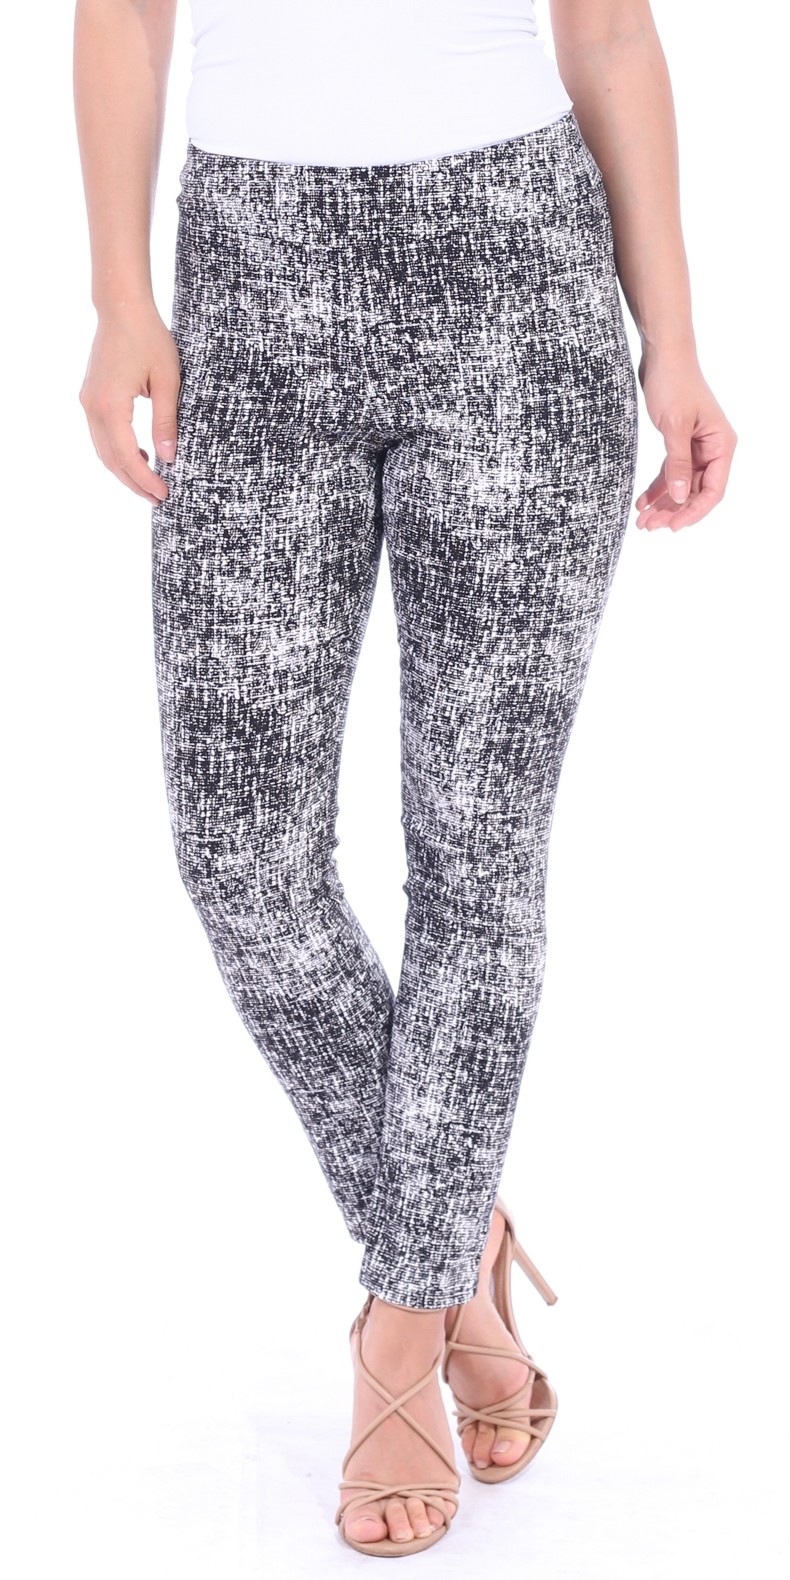 Pull On Pants For Women Ankle Length - Casual Mid Rise Stretch Office Work Pants - M6